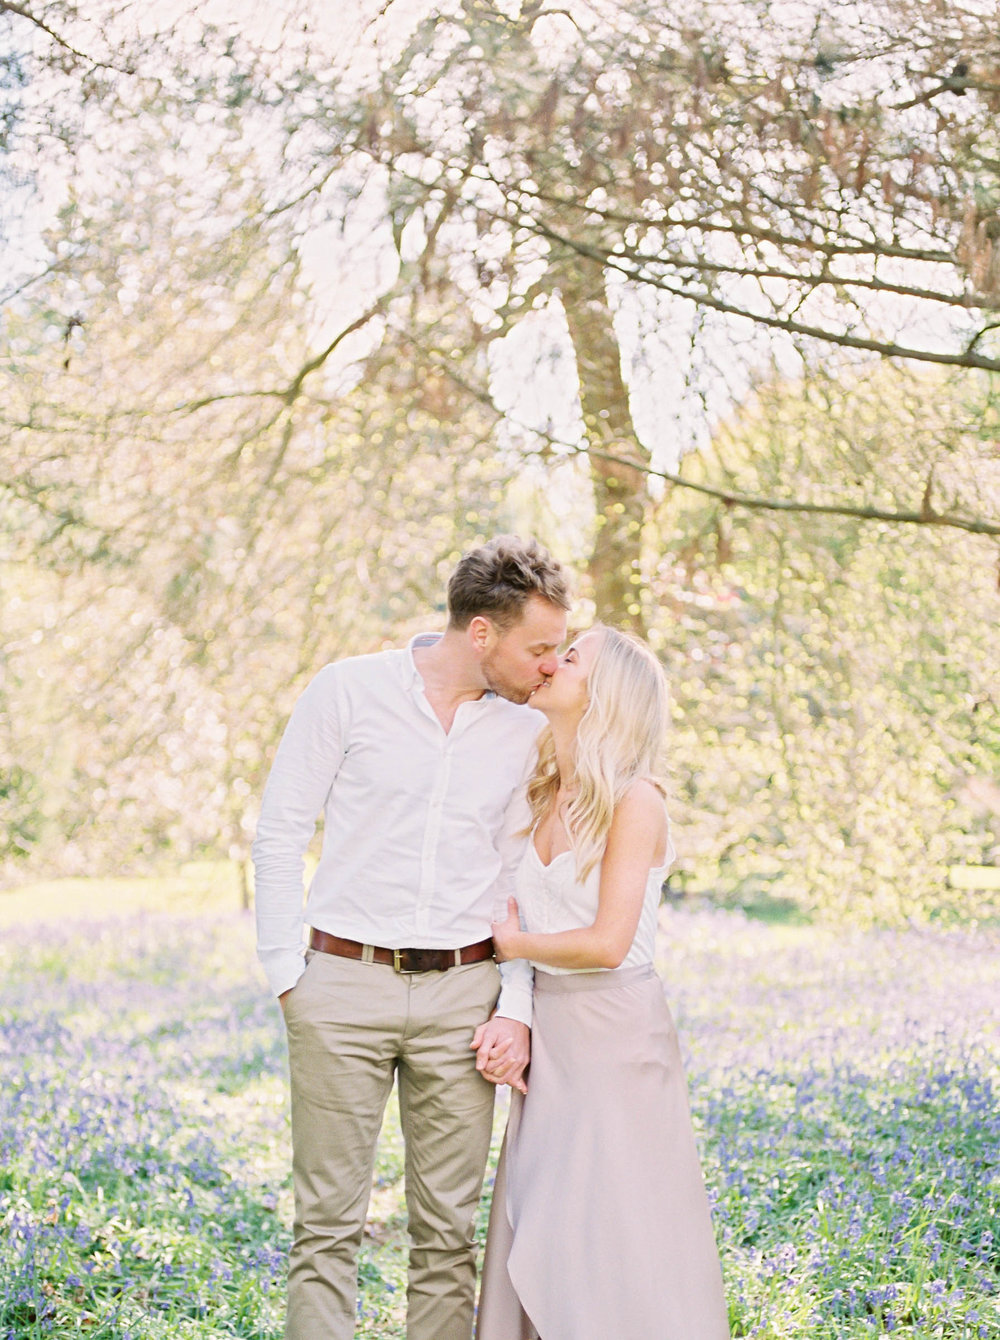 Amy O'Boyle Photography- Destination & UK Fine Art Film Wedding Photographer- Sheffield Park Garden National Trust Spring Engagement Shoot-12.jpg